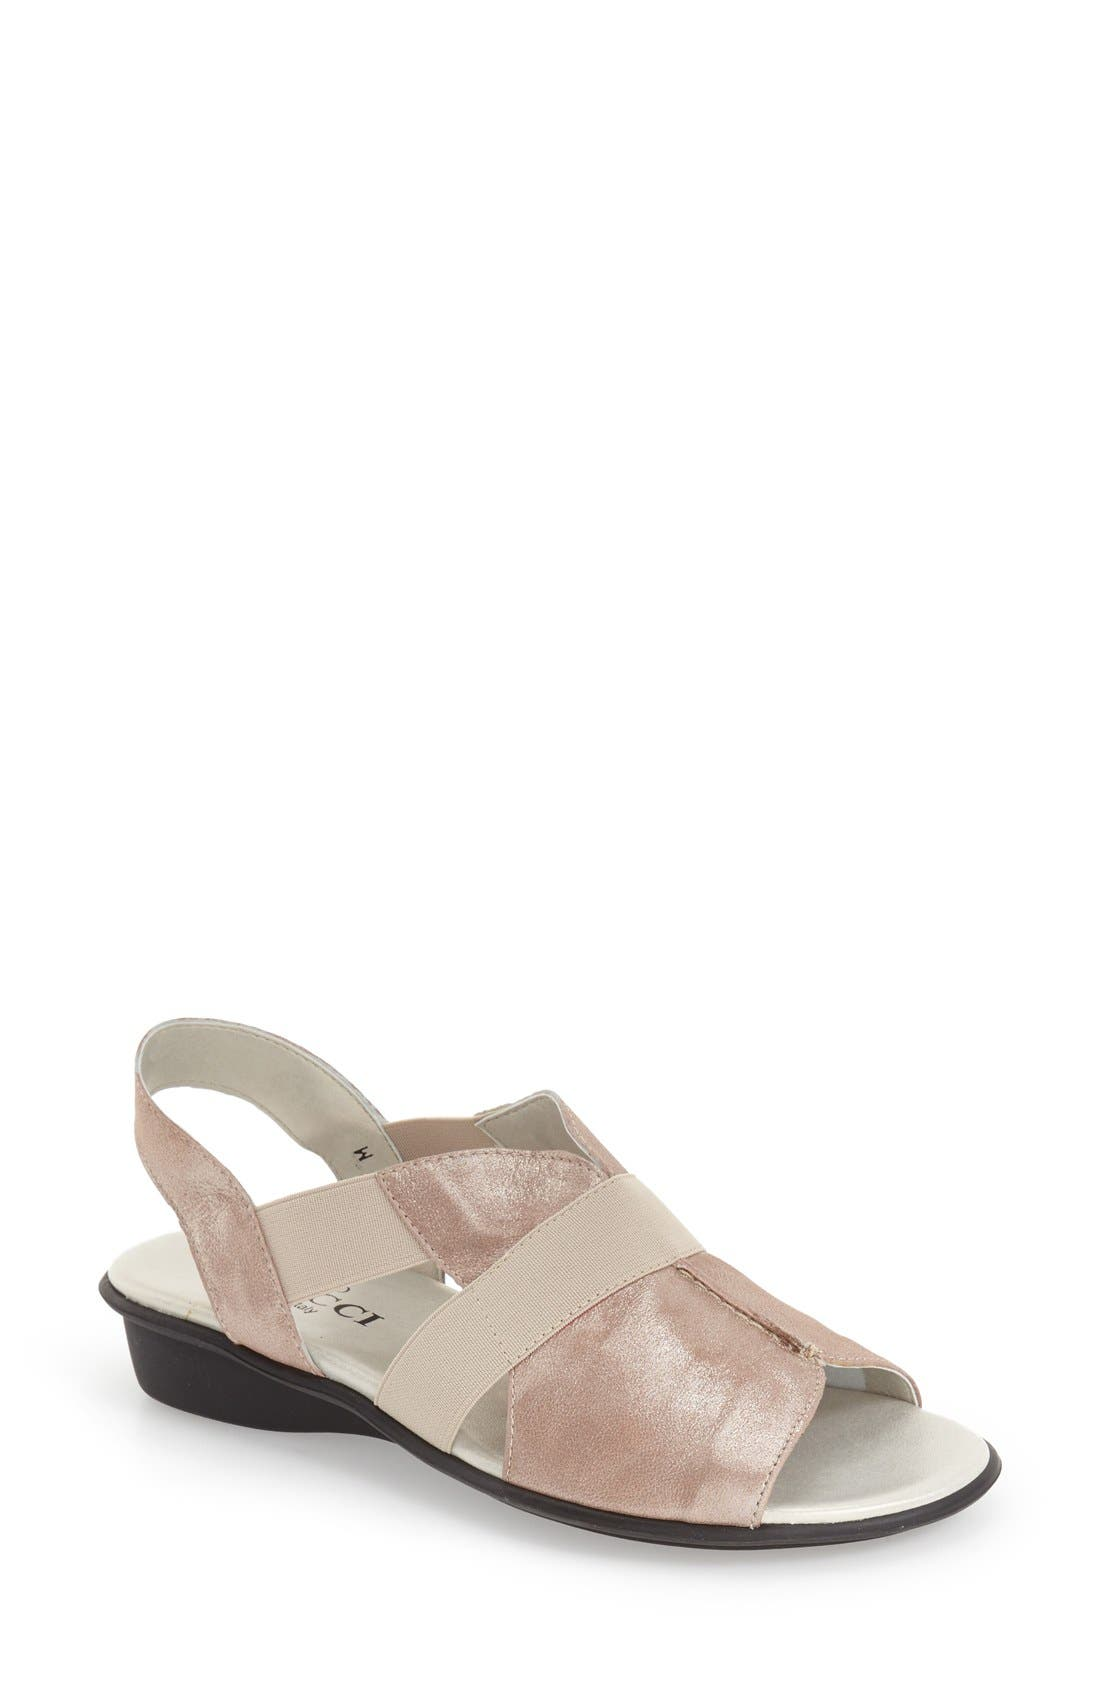 Alternate Image 1 Selected - Sesto Meucci 'Ella' Wedge Sandal (Women)